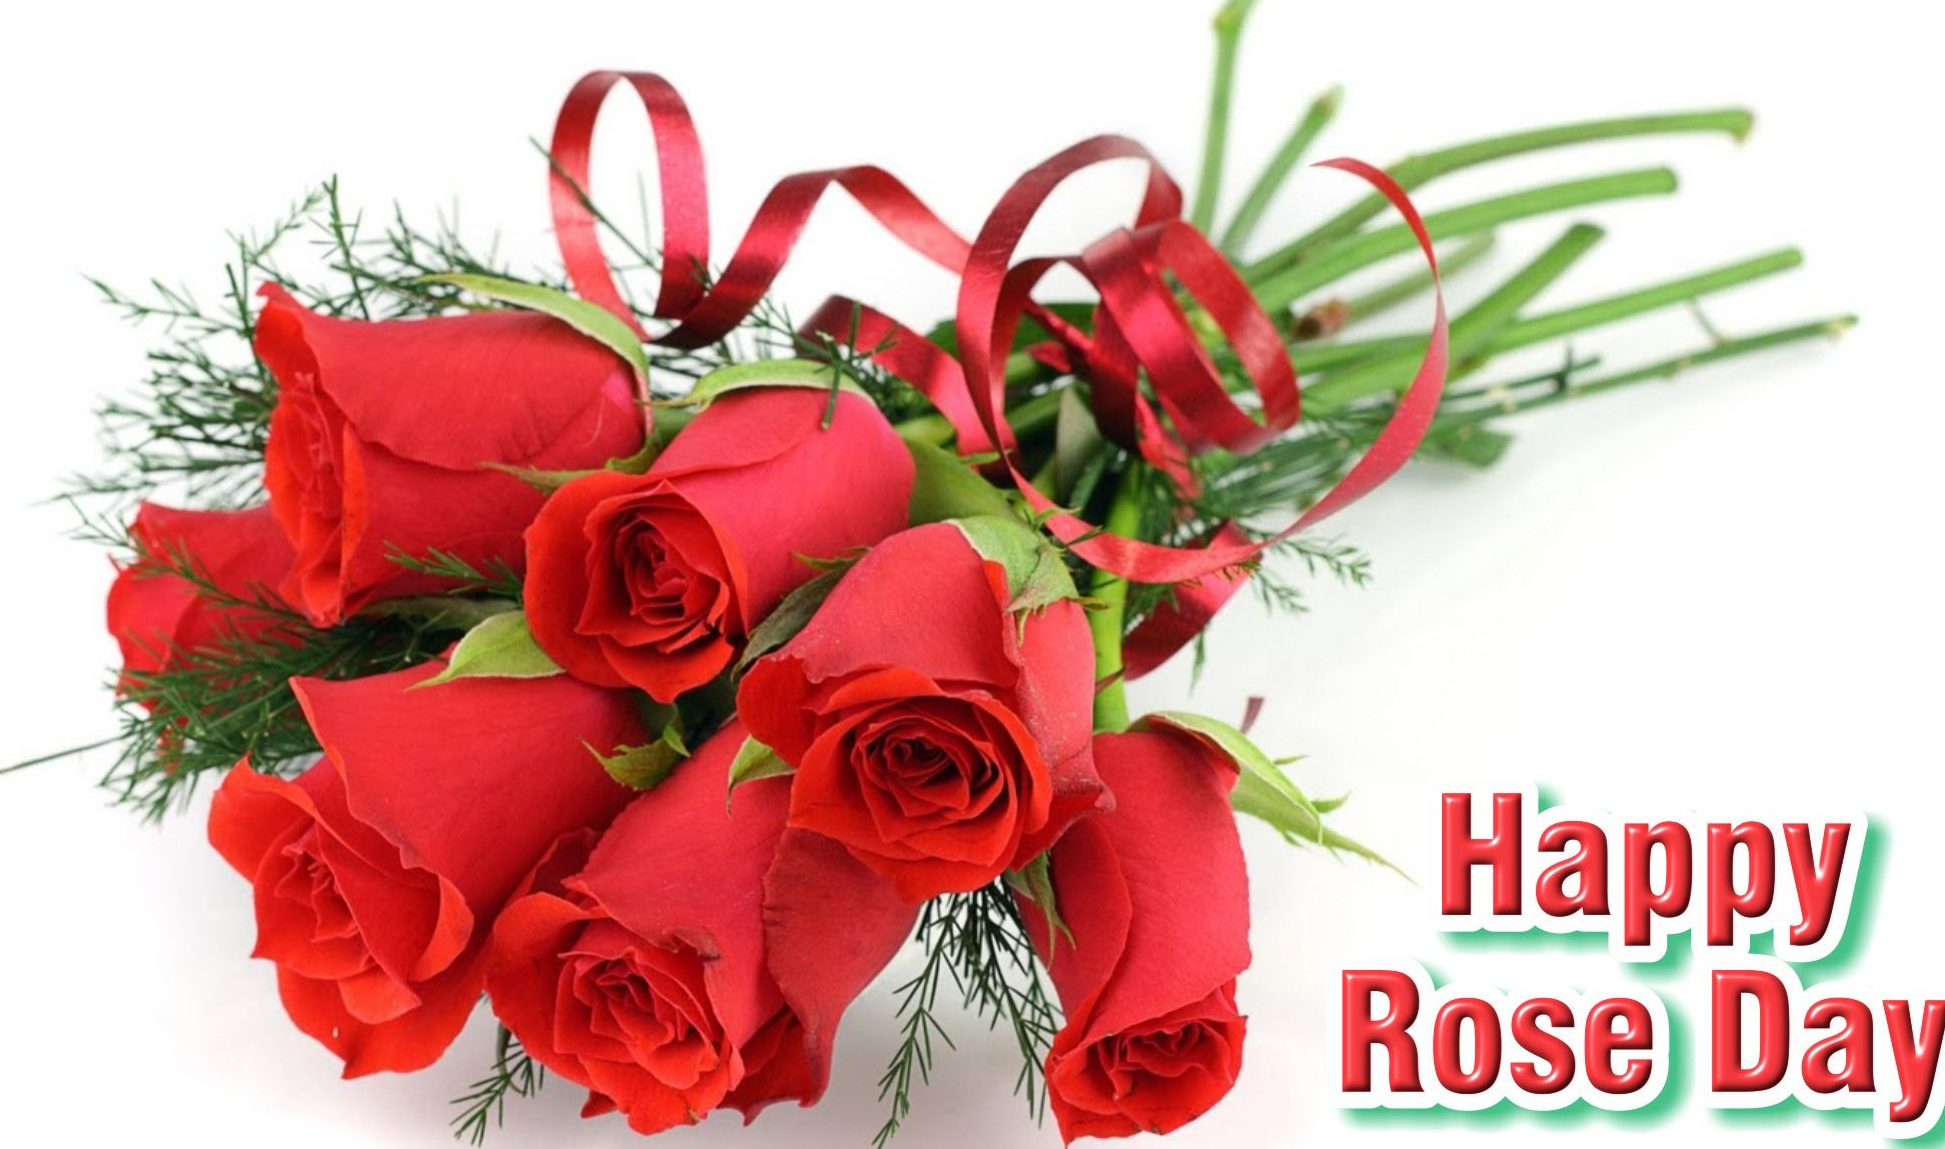 Happy Rose Day Red Roses Bouquet Wallpaper - Happy Rose Day 2019 Images Download , HD Wallpaper & Backgrounds